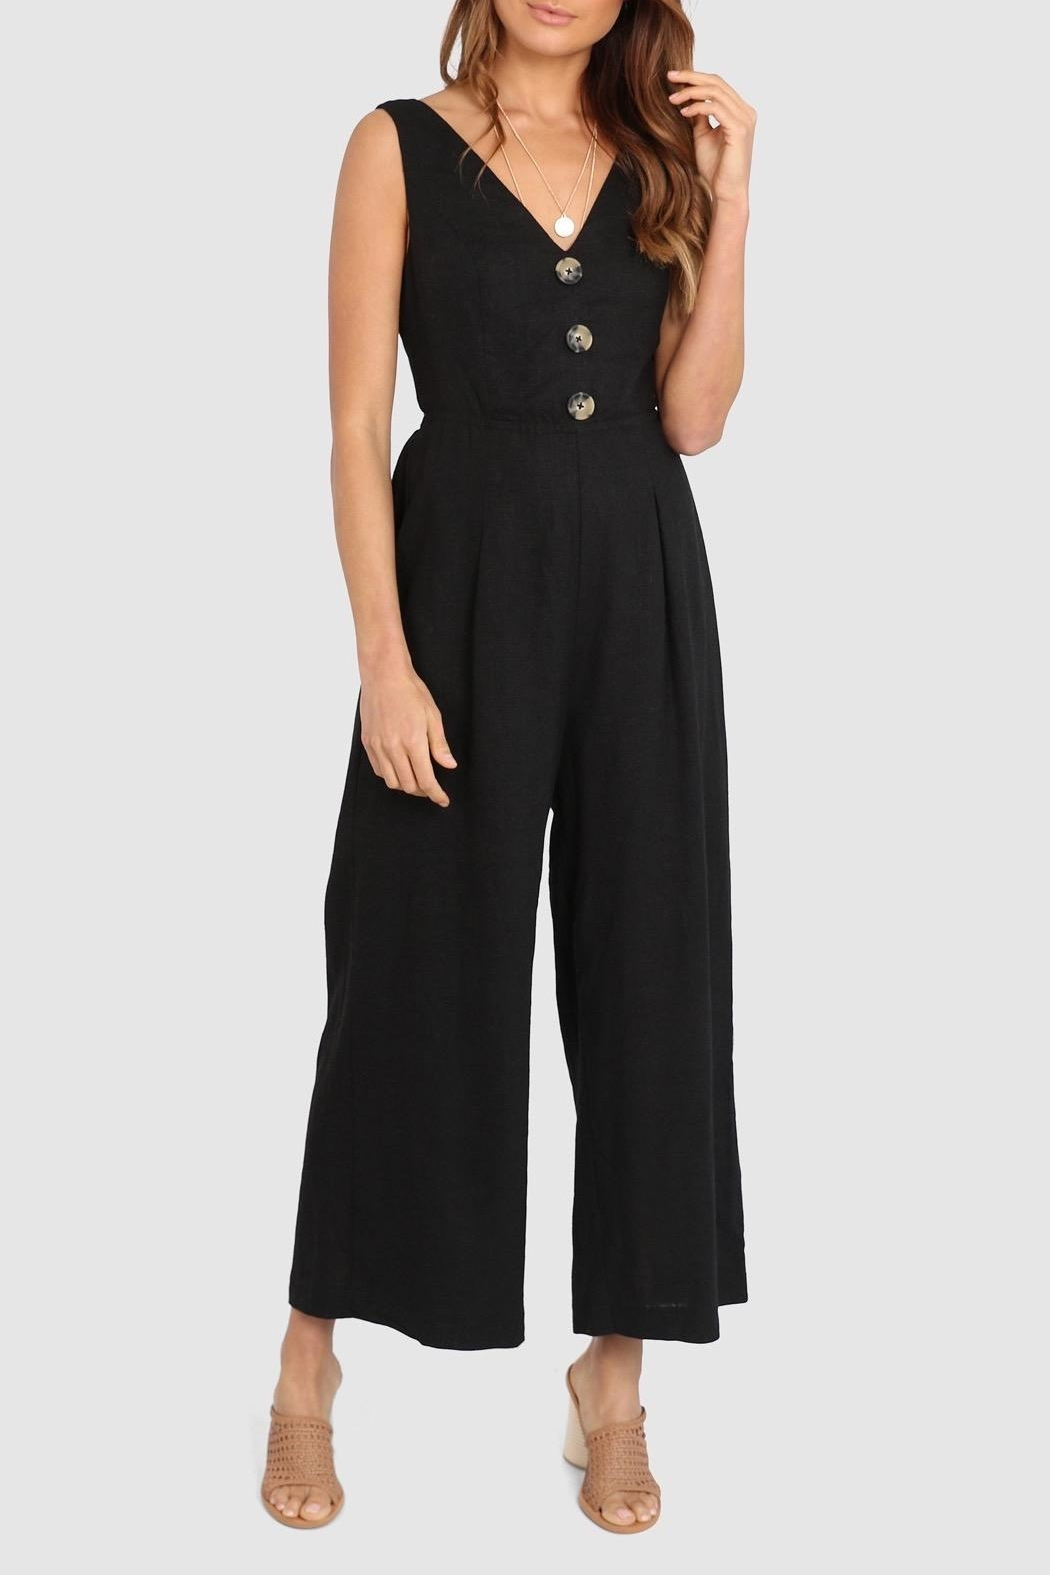 Lost in Lunar Maya Linen Pantsuit - Front Cropped Image